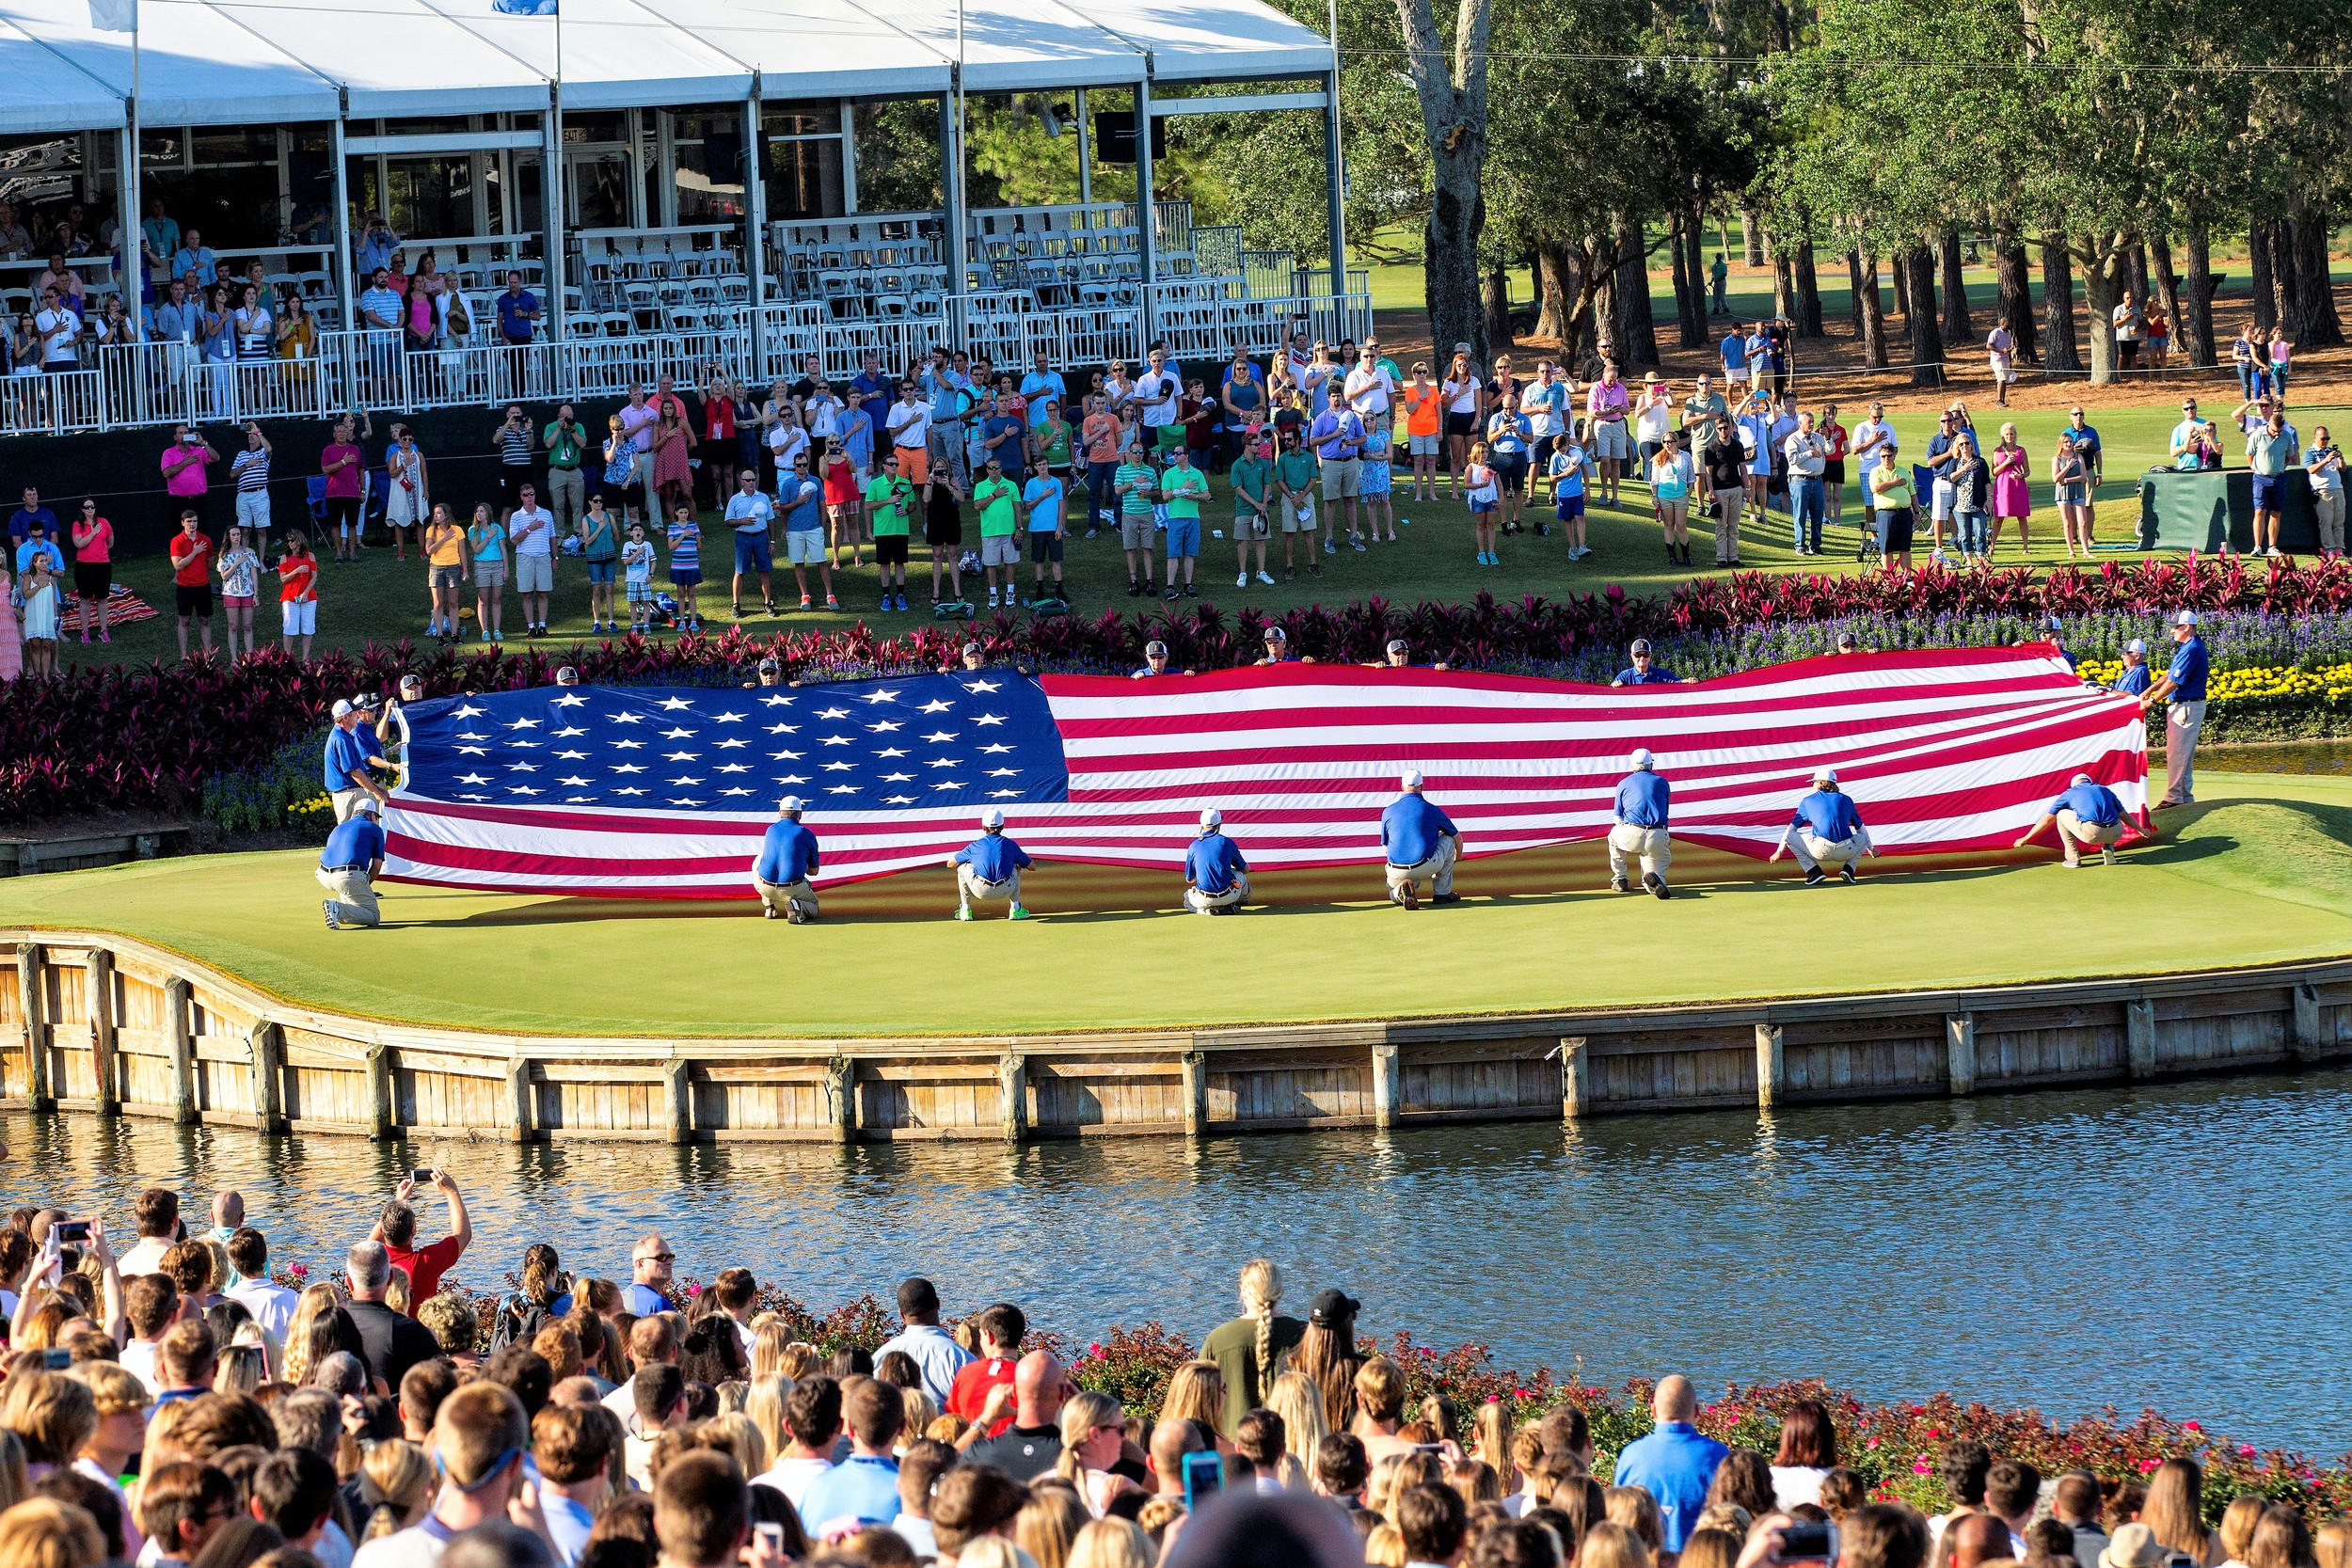 A giant American flag is unfurled on the iconic TPC Sawgrass island green.